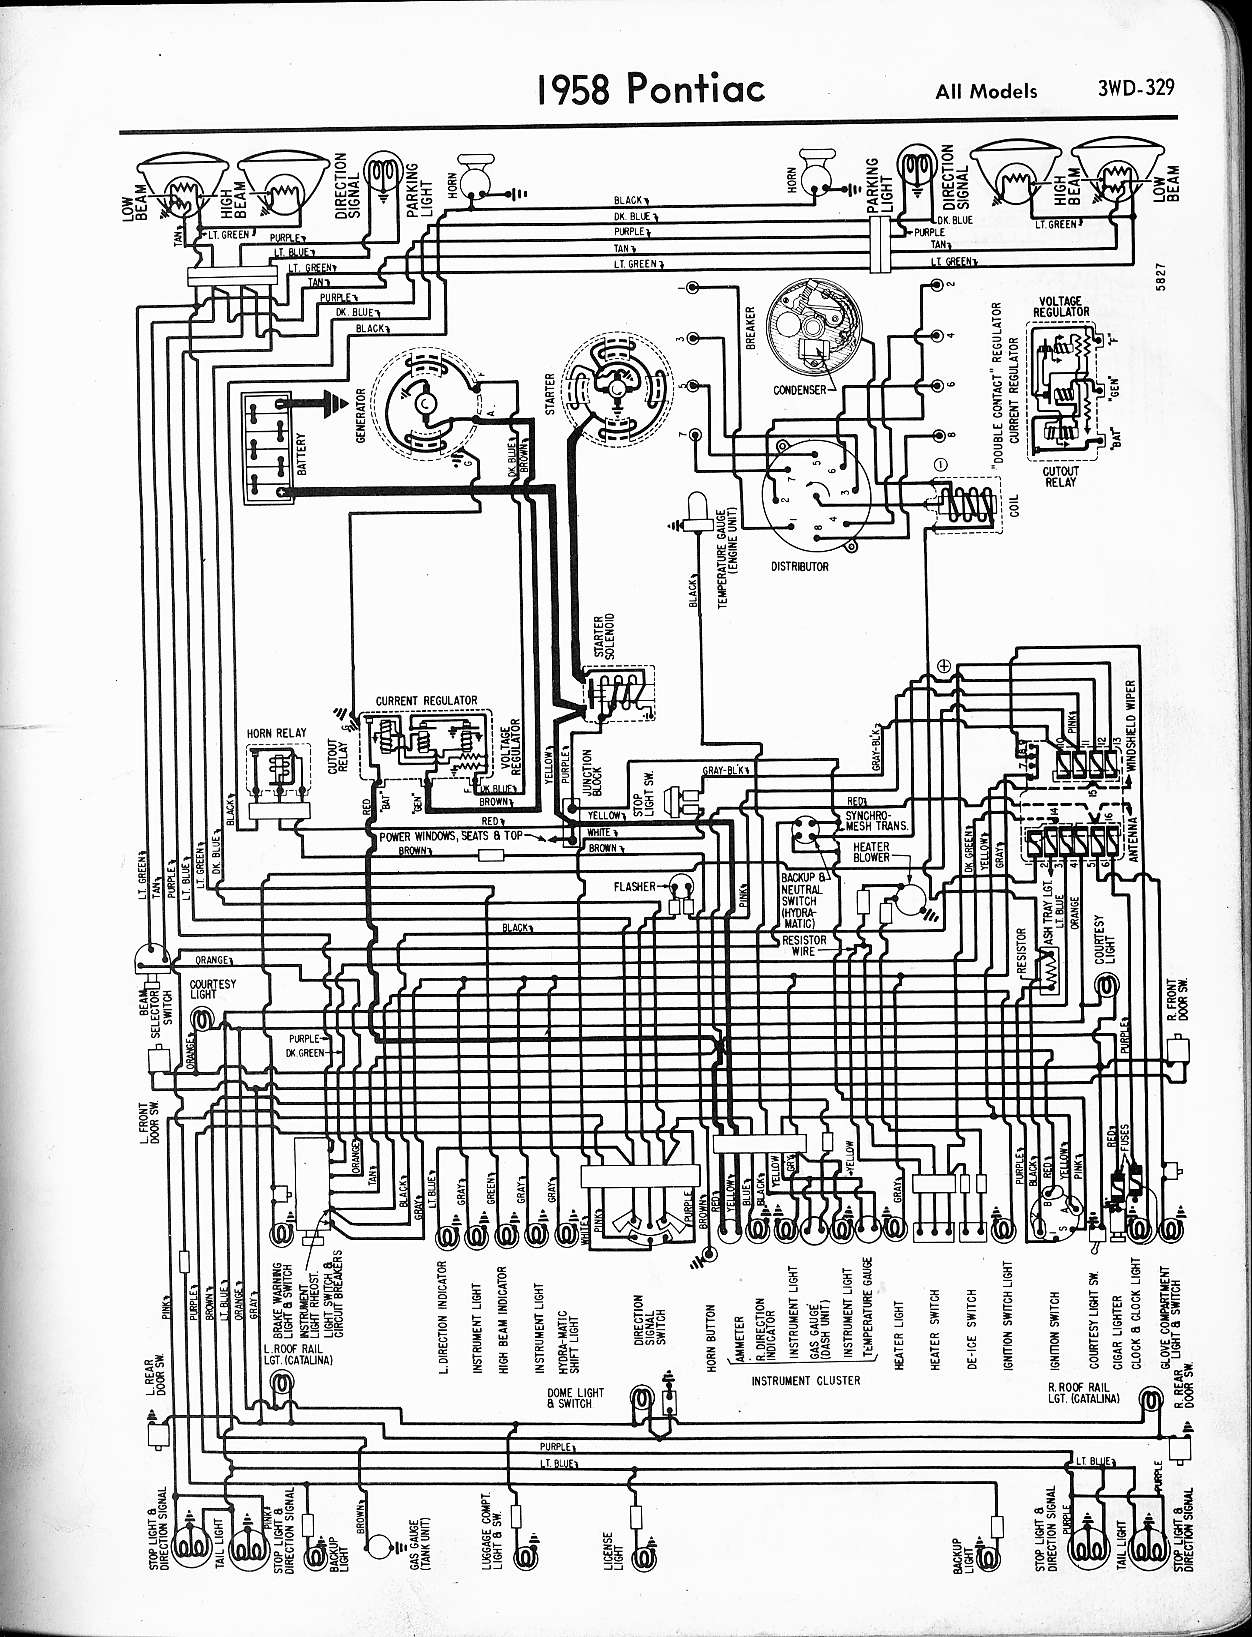 MWire5765 329 wallace racing wiring diagrams pontiac wiring diagrams at virtualis.co